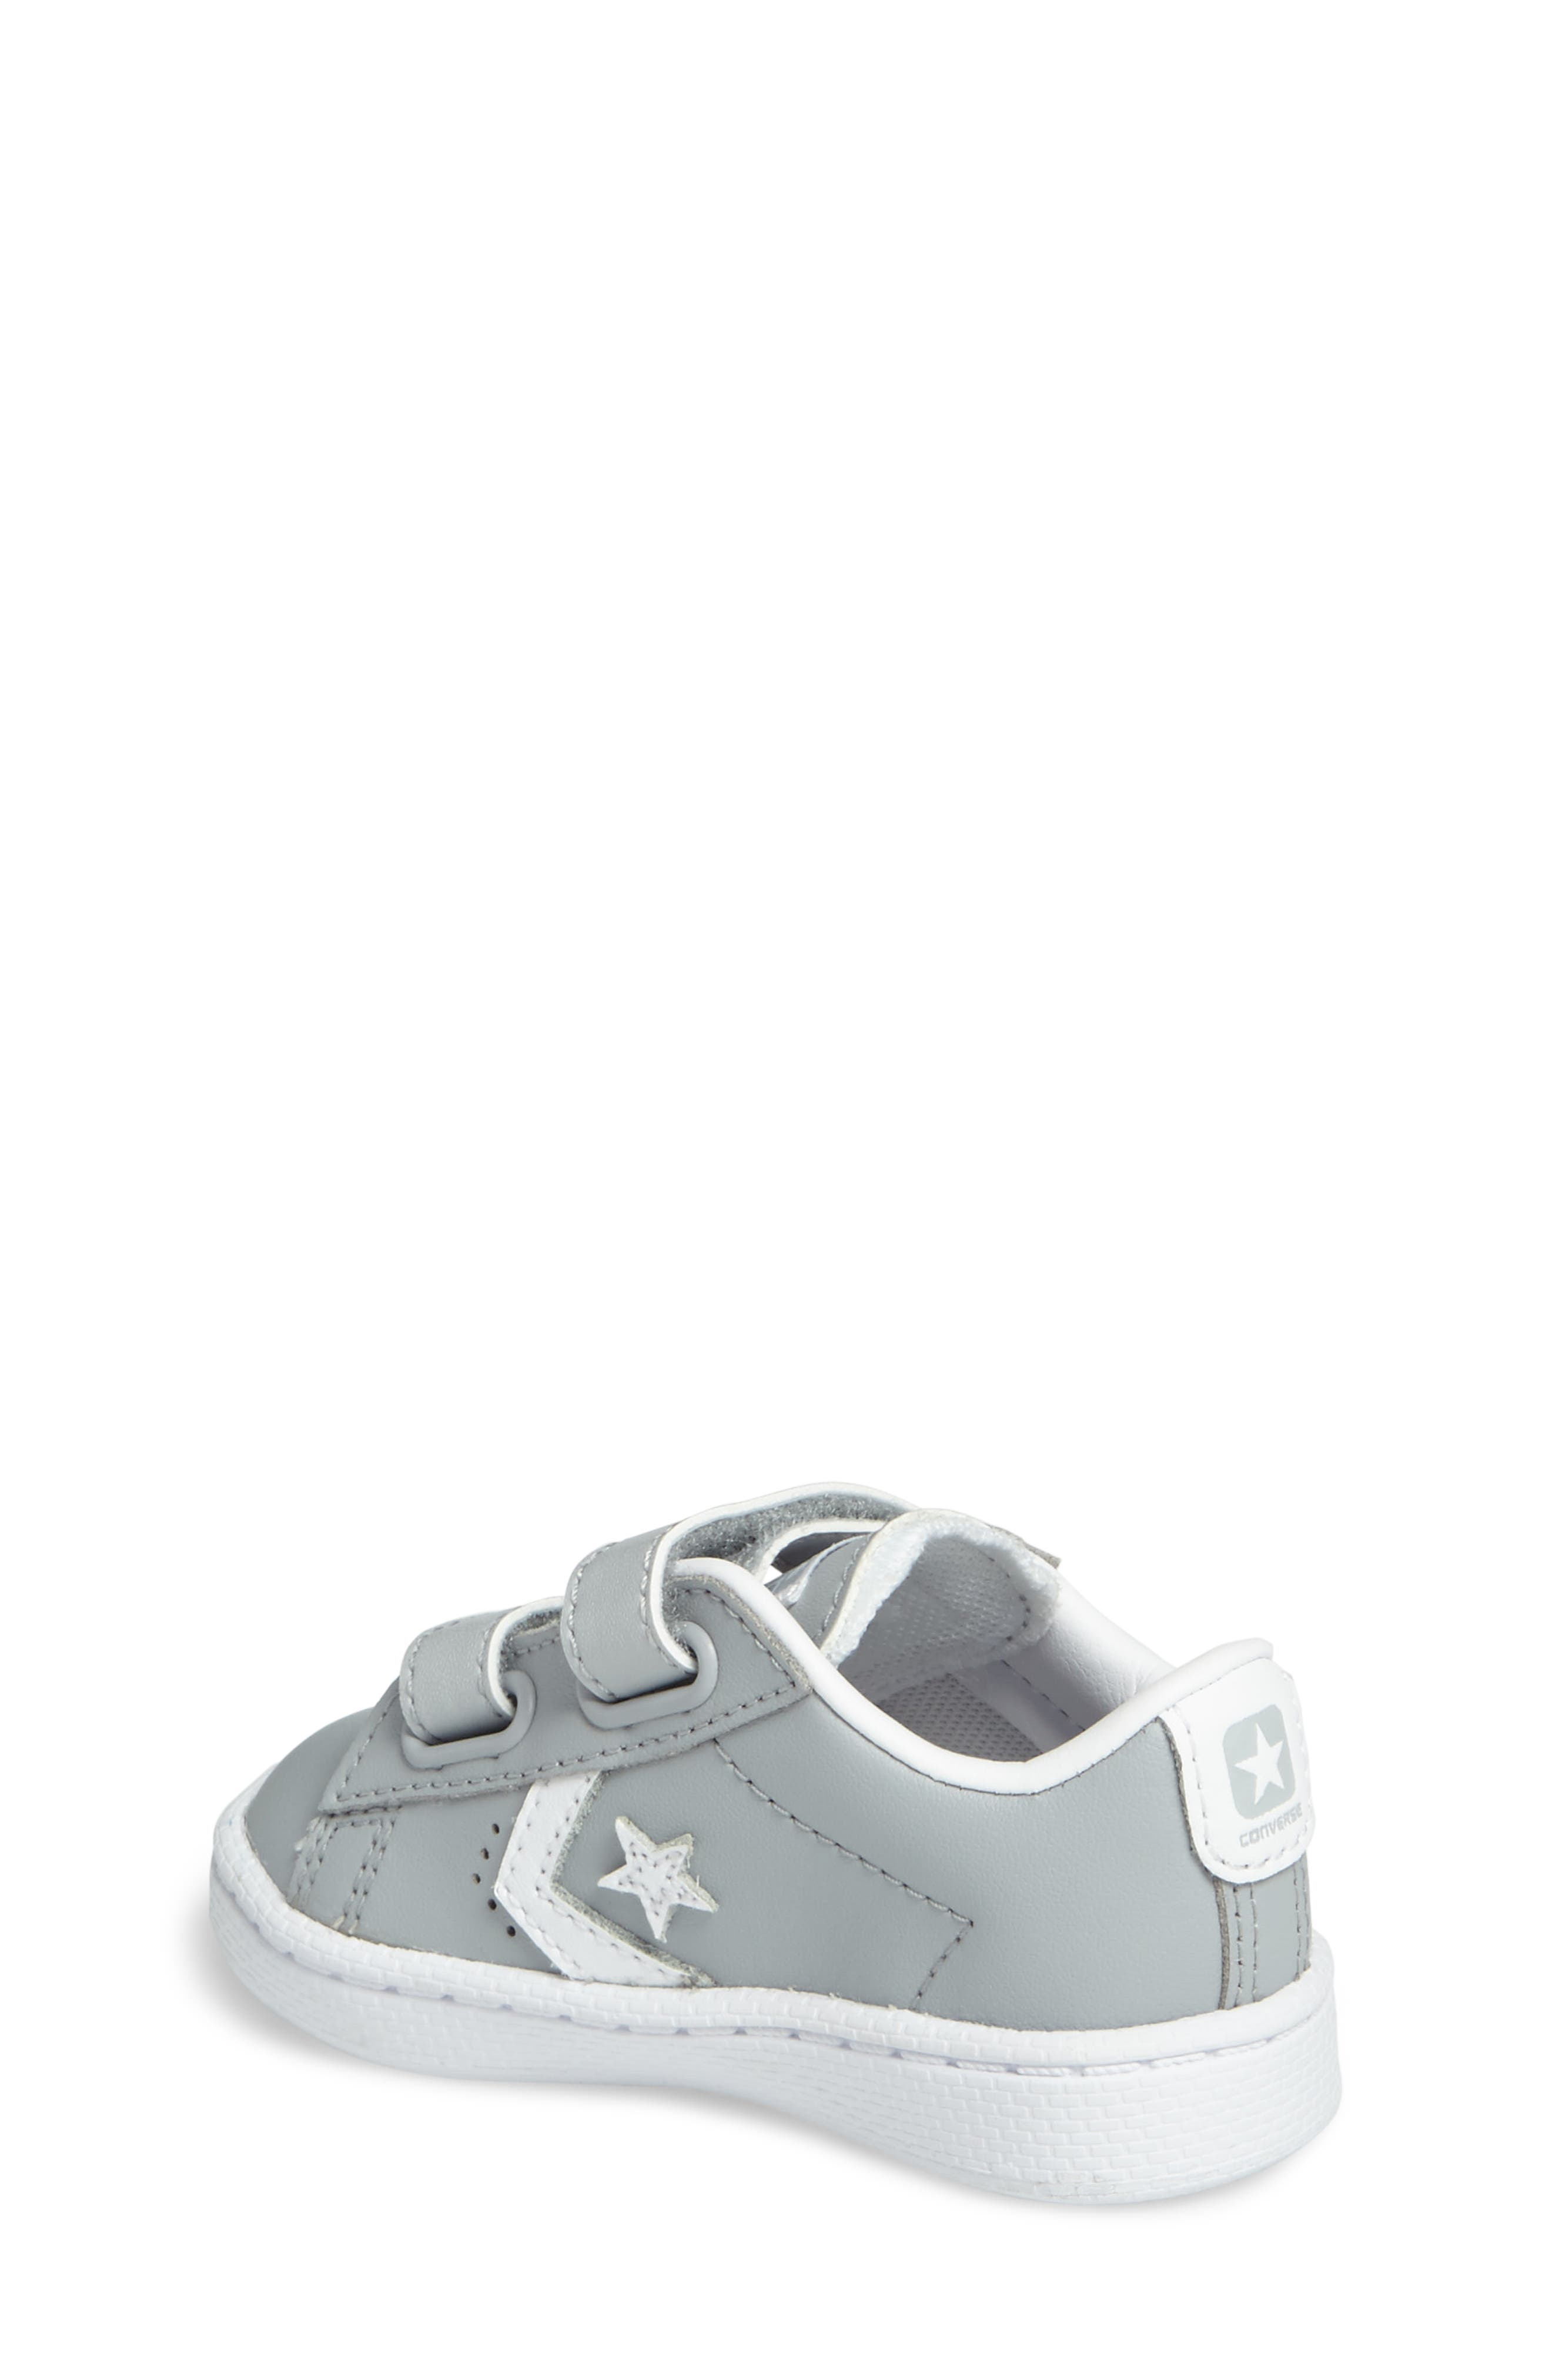 Pro Leather Low Top Sneaker,                             Alternate thumbnail 2, color,